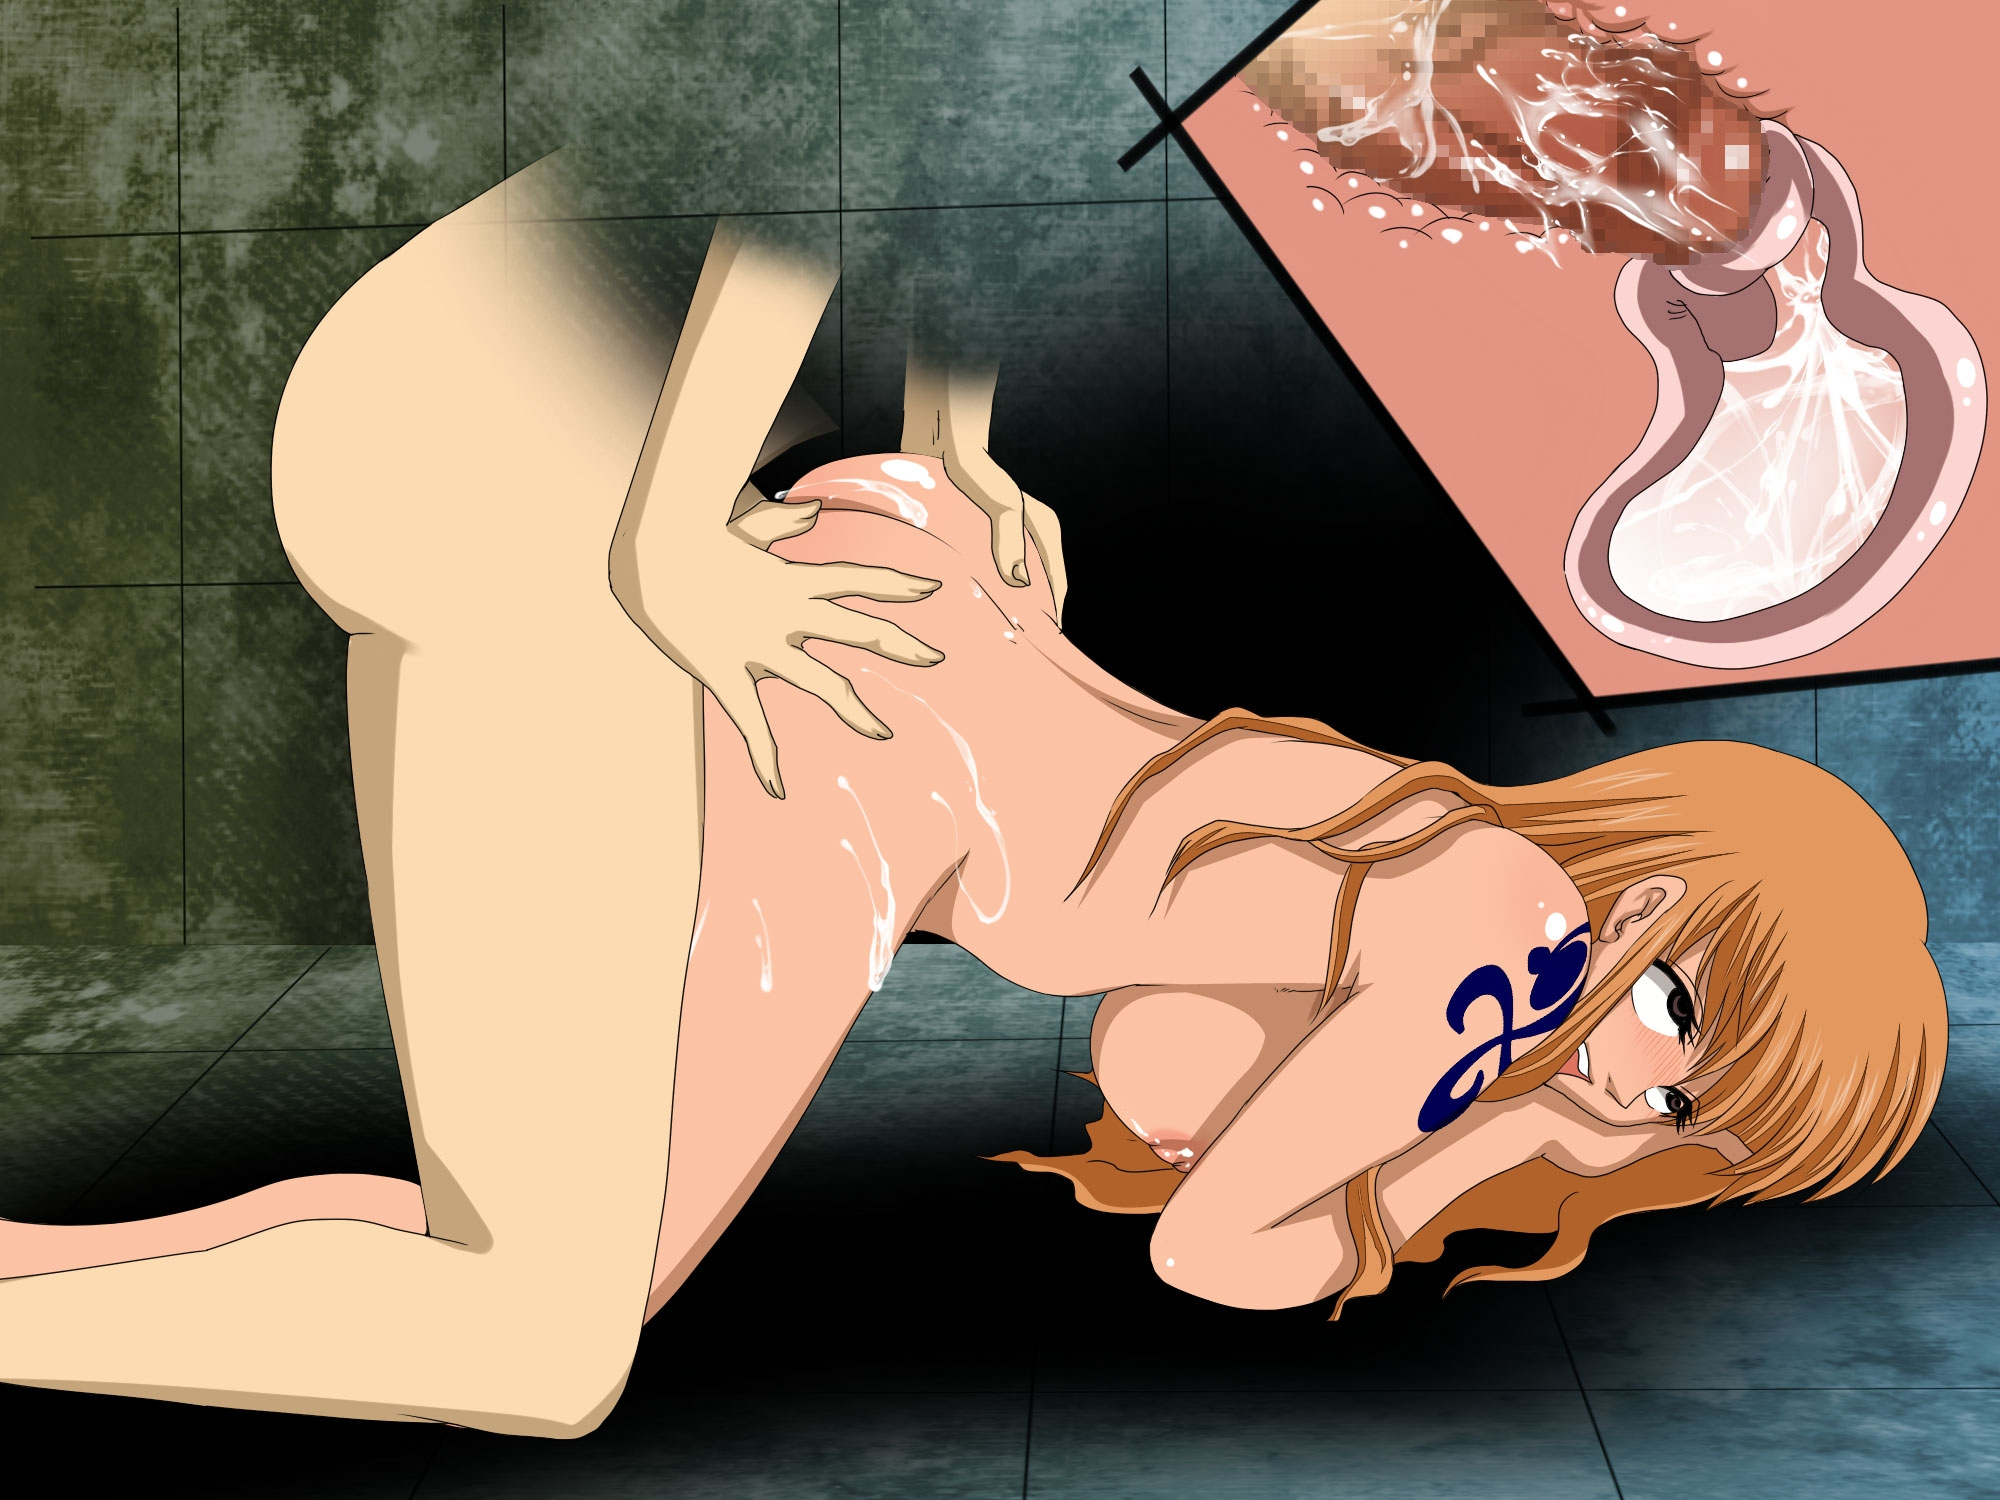 Toon sex pic ##000130878861 censored nami one piece tagme x-ray